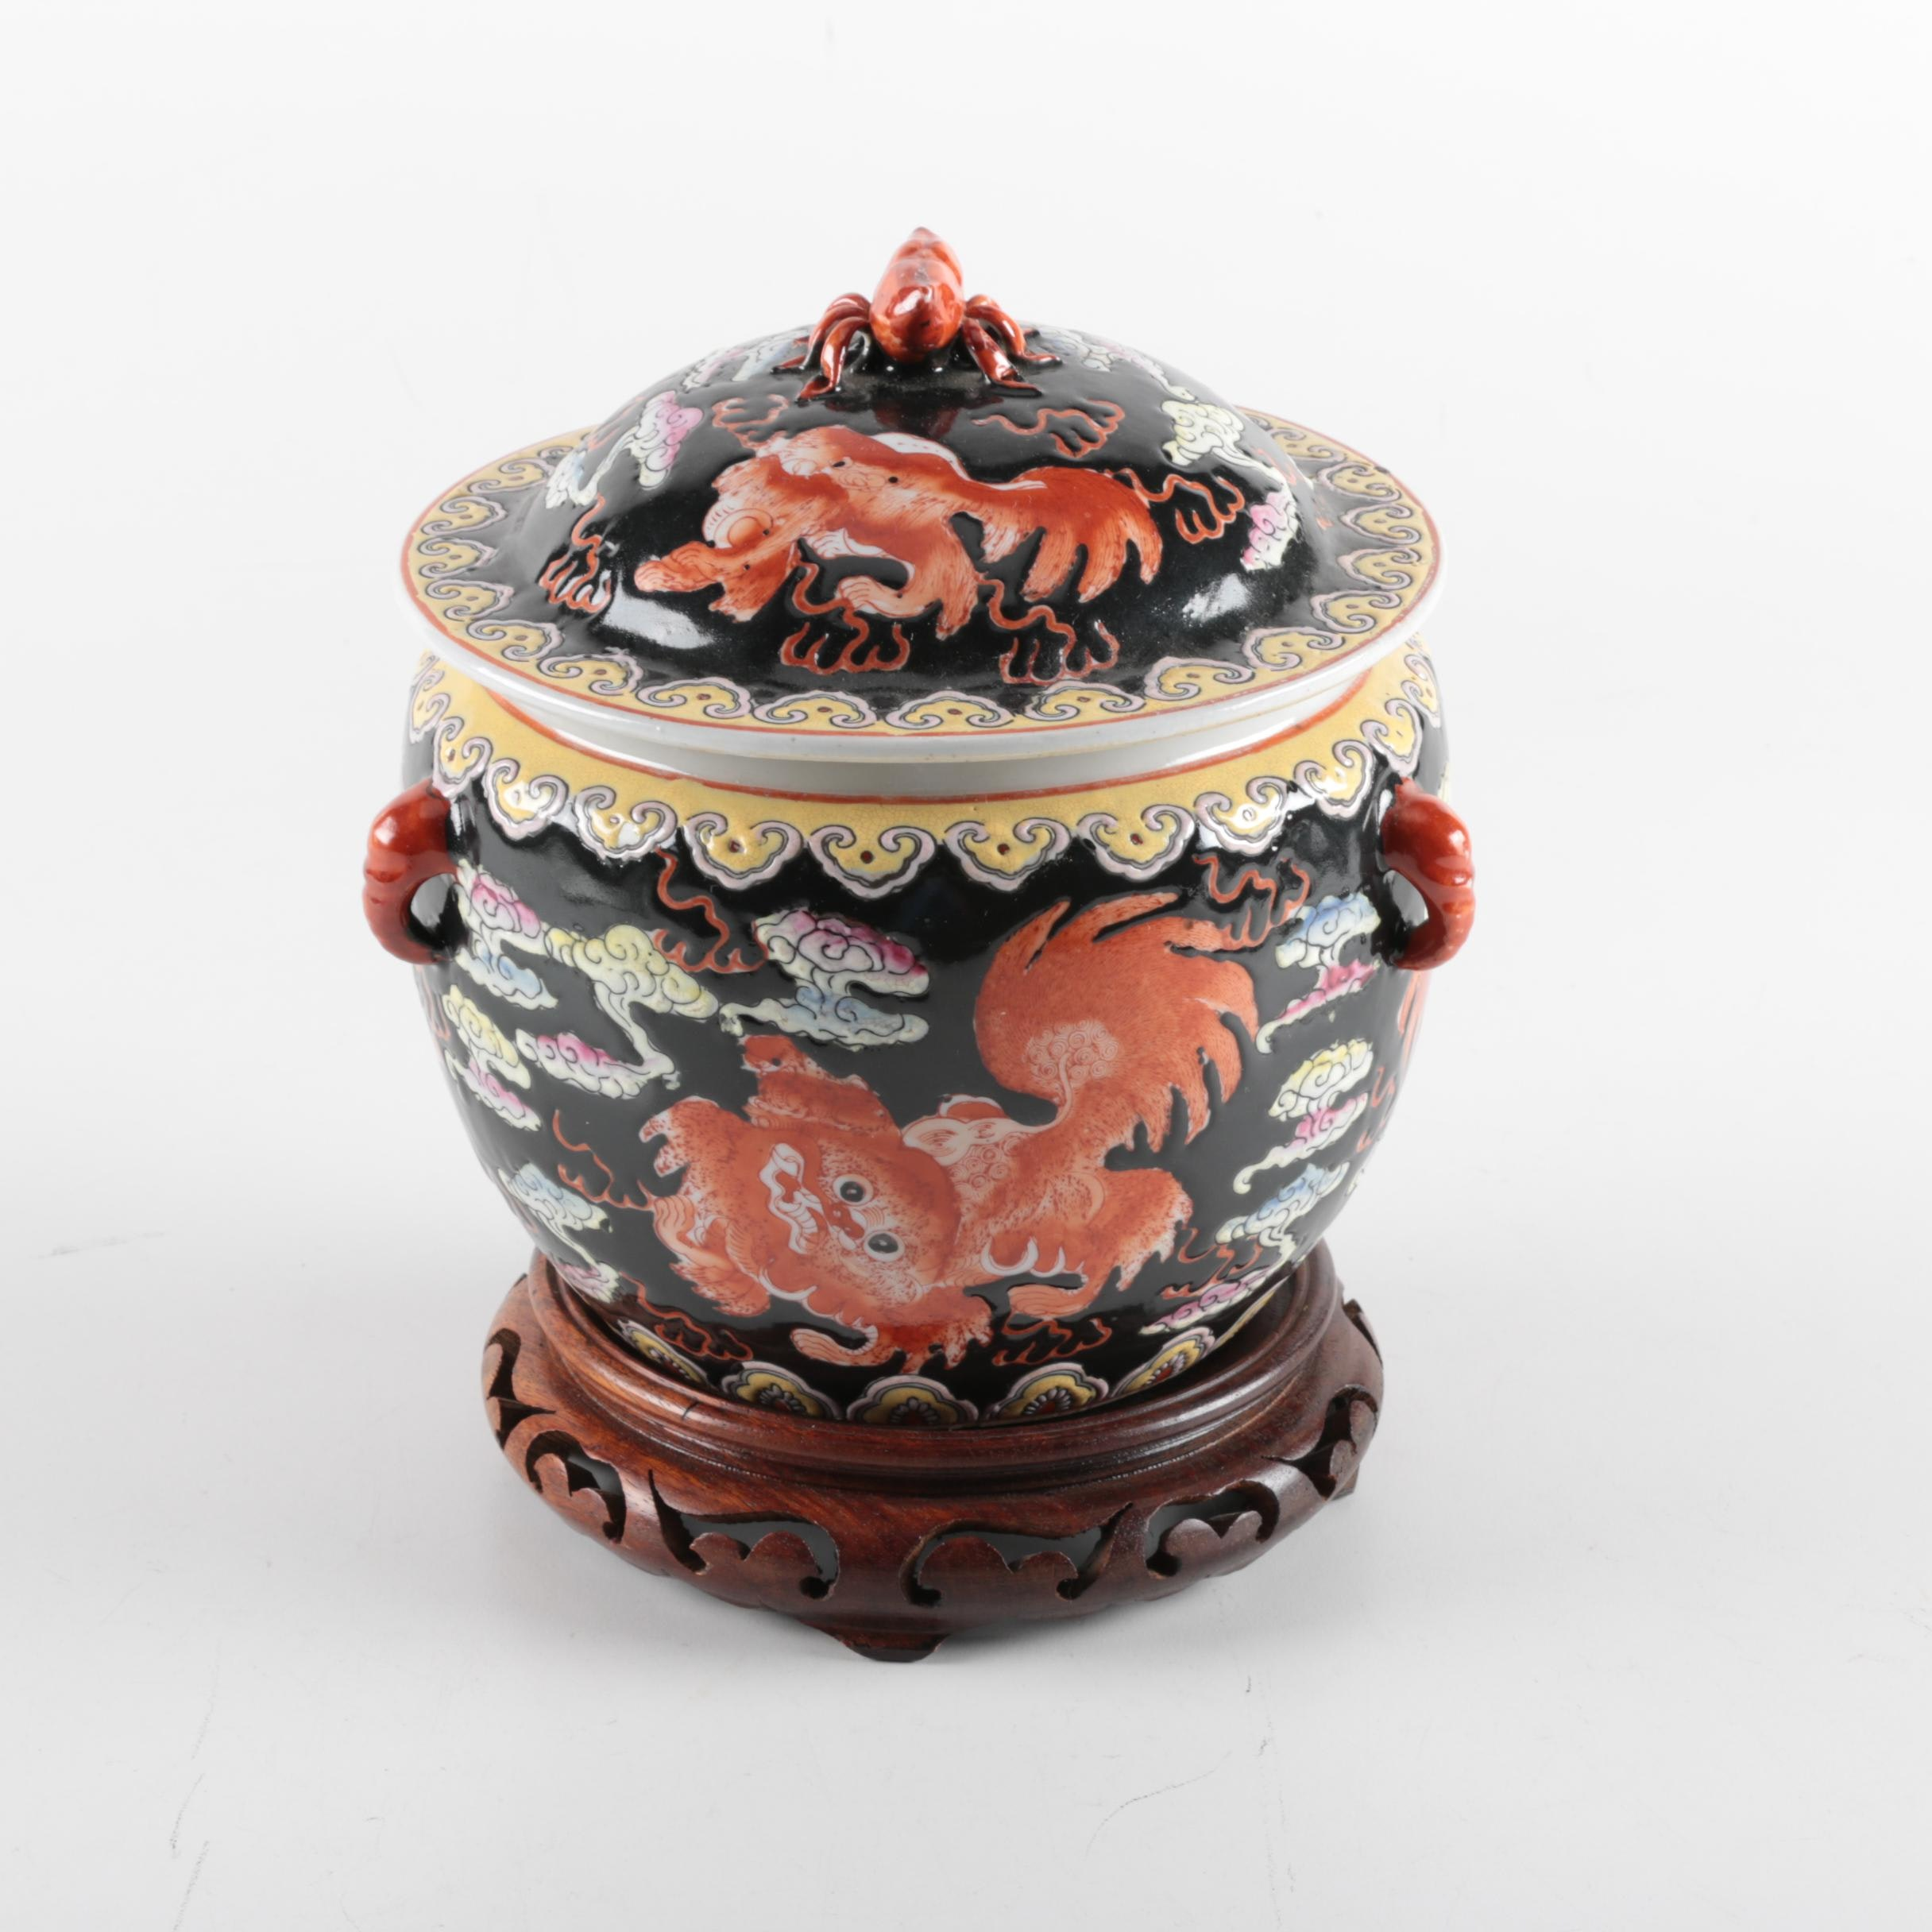 Asian Inspired Lidded Vessel and Stand